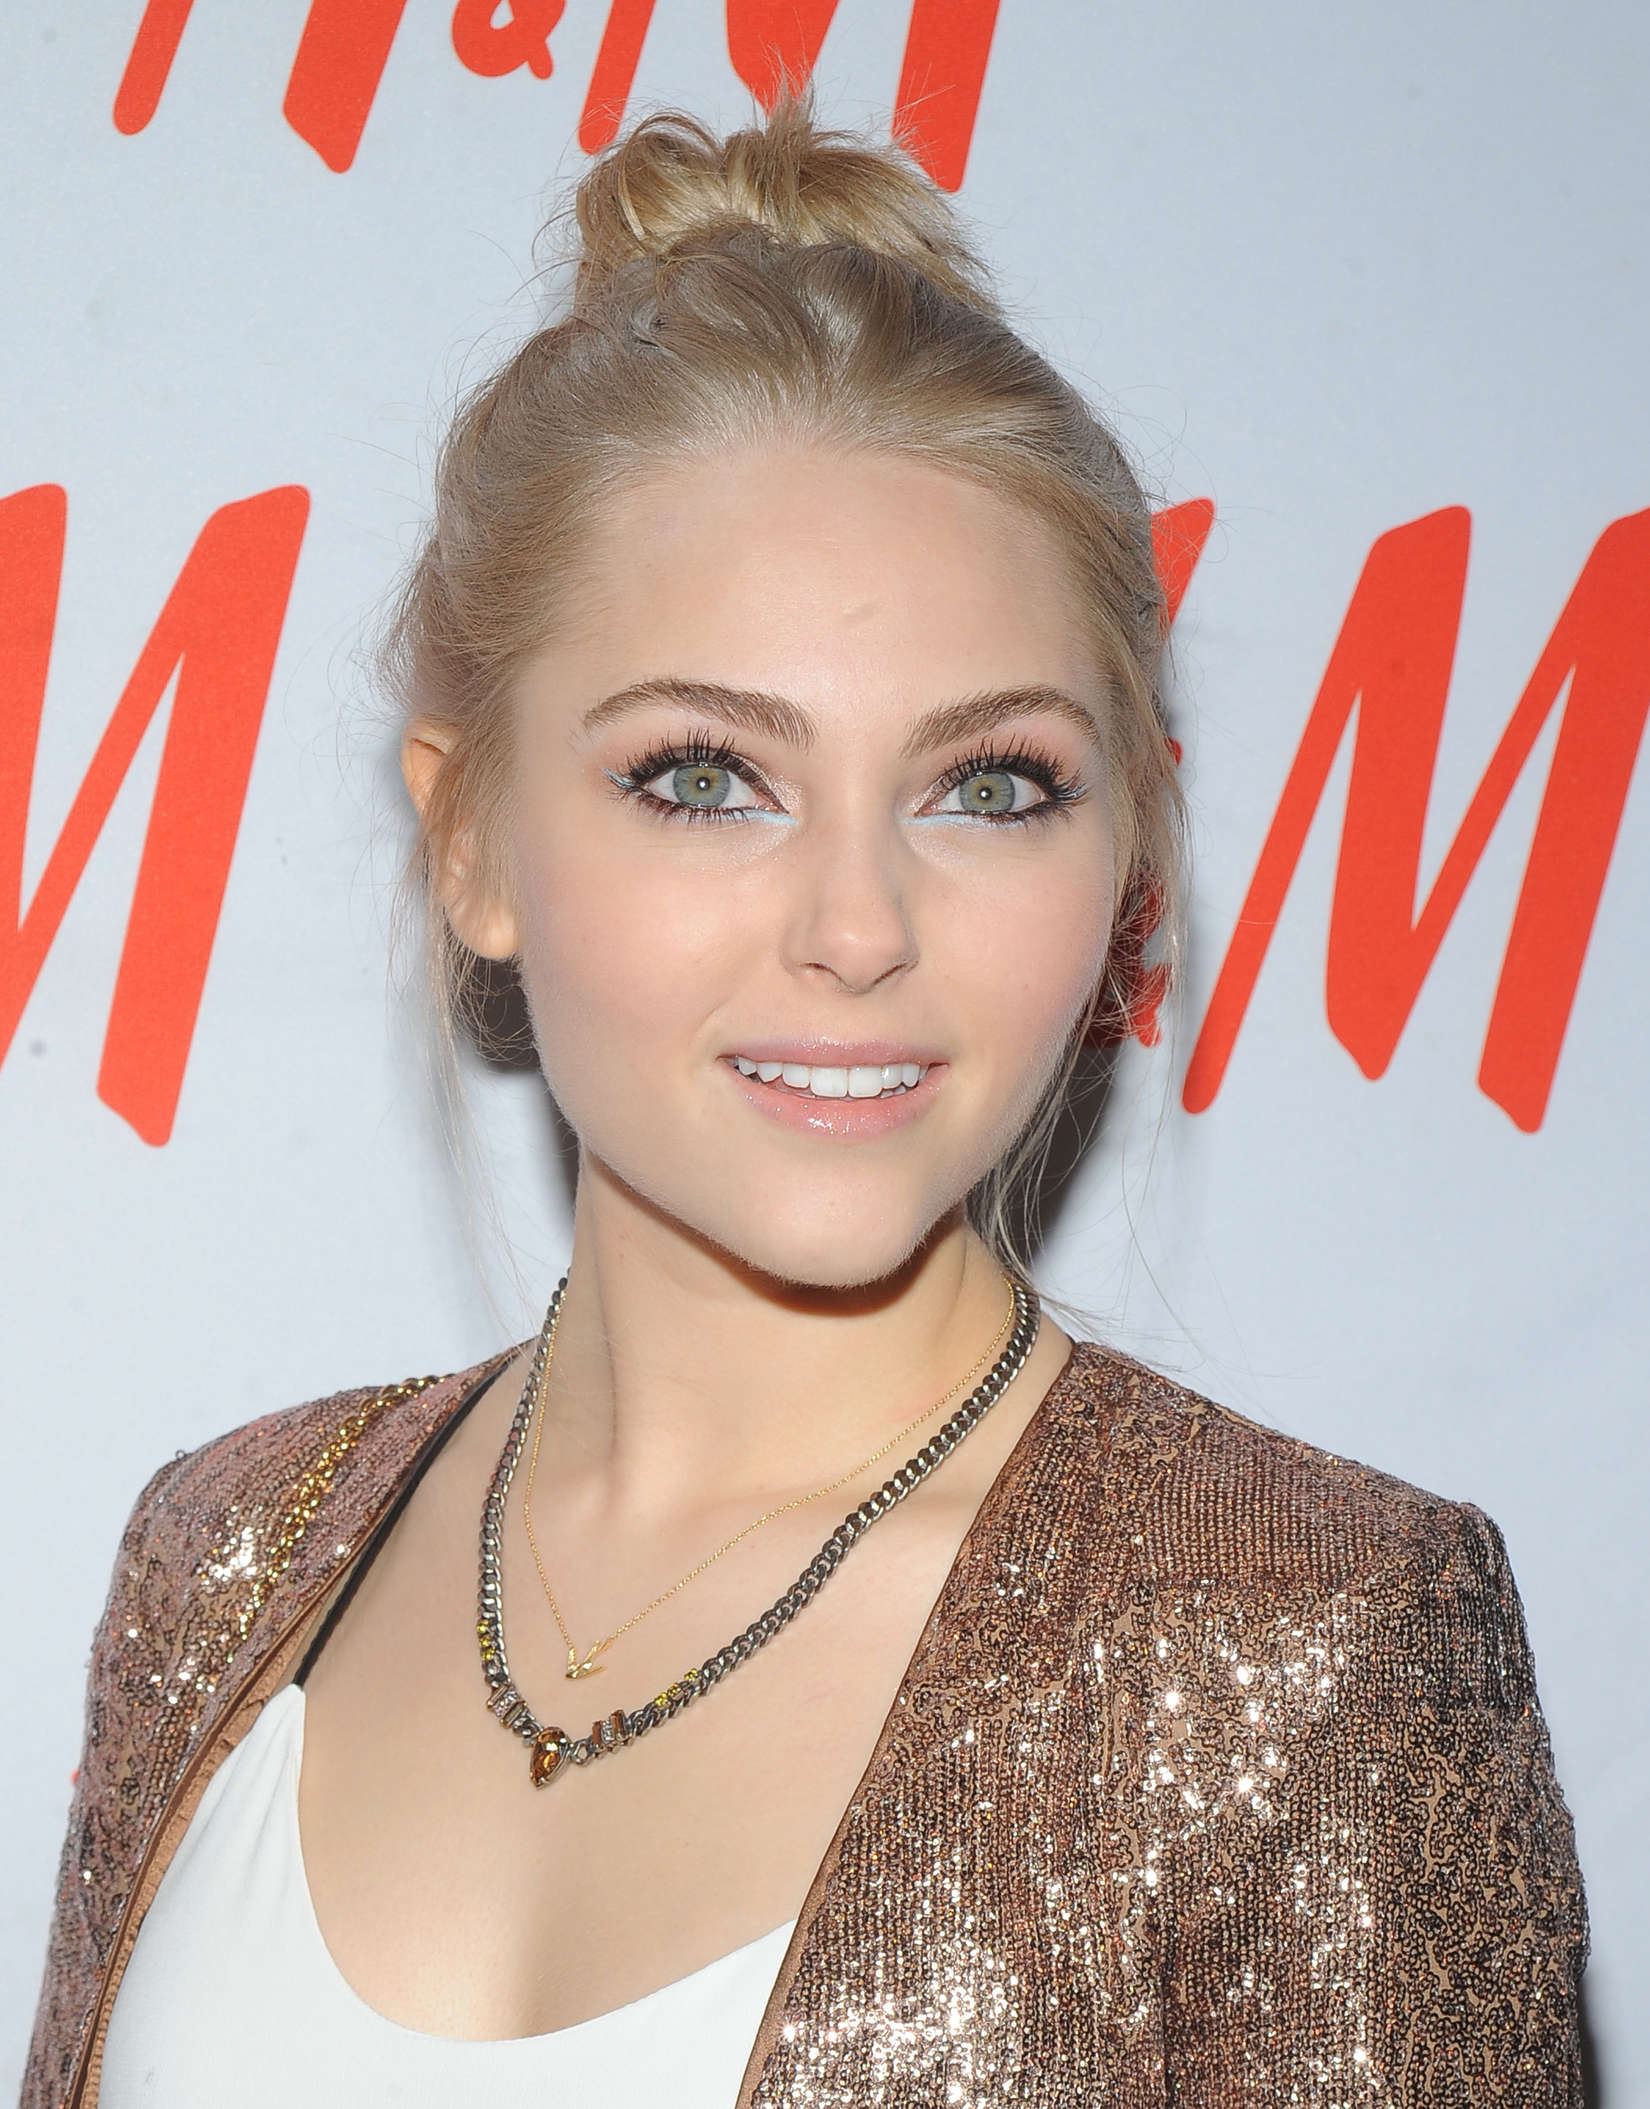 annasophia-robb-hypnotized-sex-and-prayer